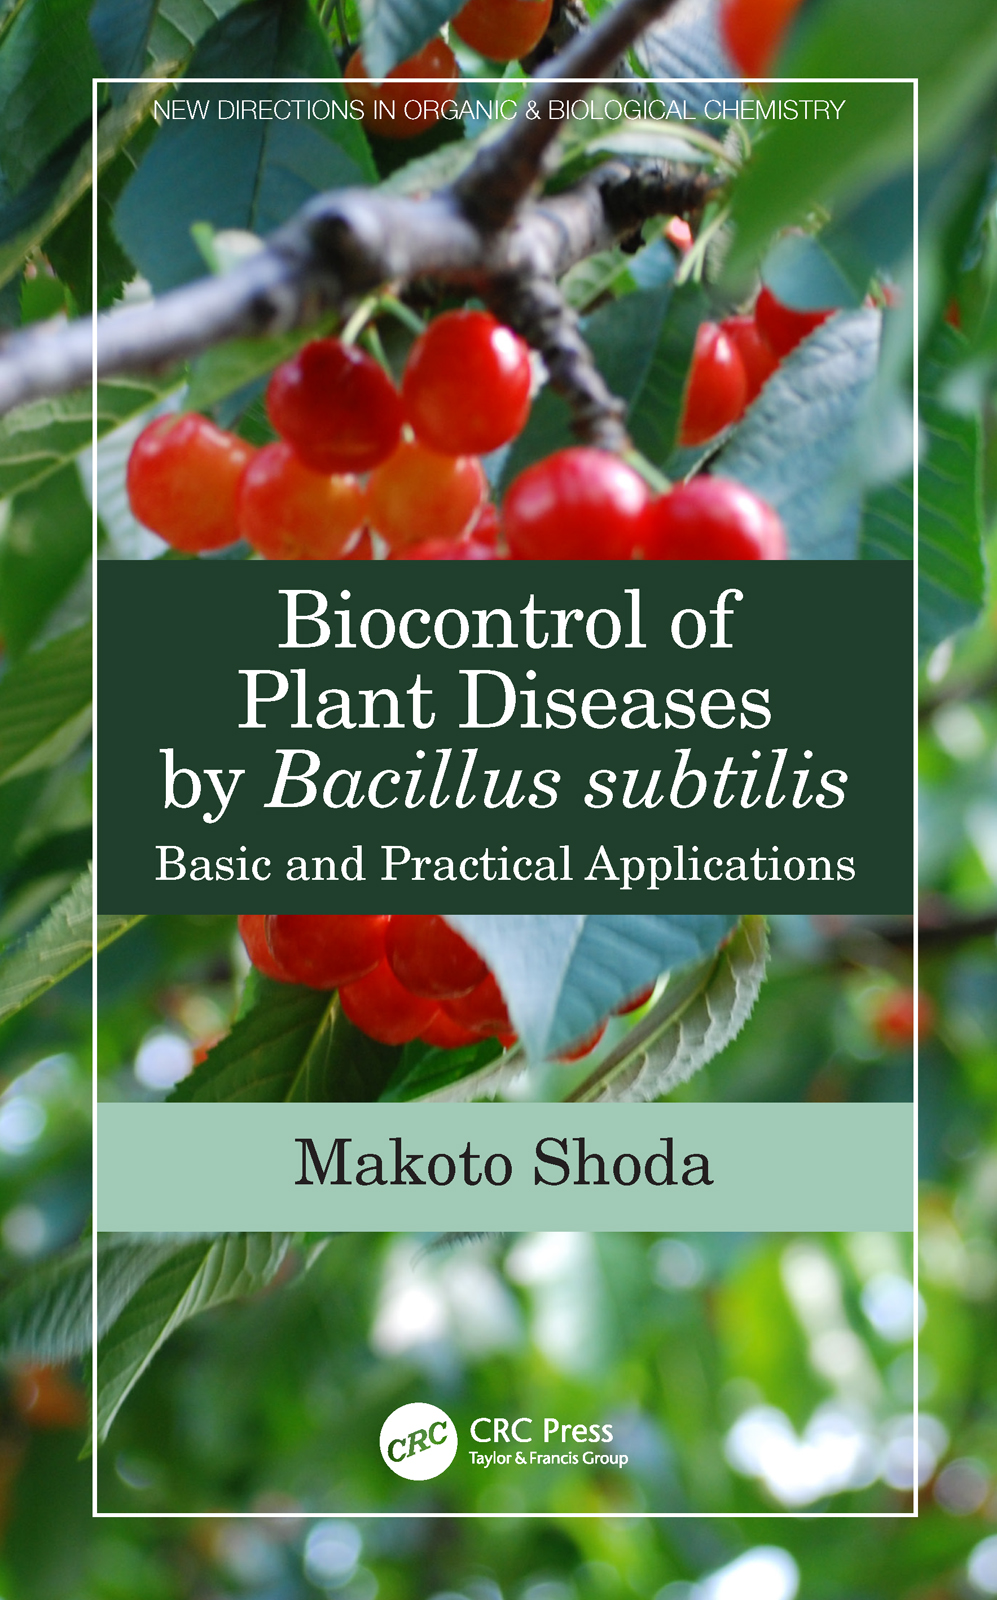 Co-Use of B. subtilis with Chemical Pesticide